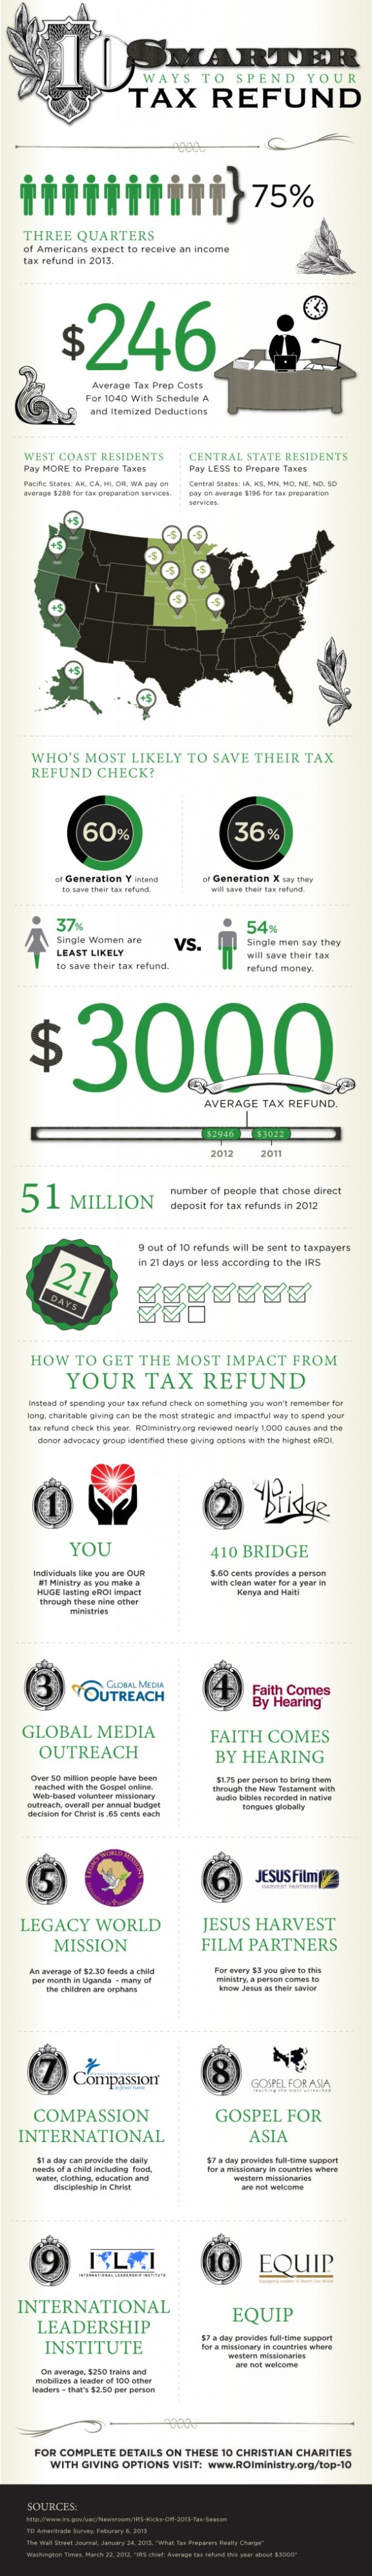 Smarter Ways to Spend Tax Refund